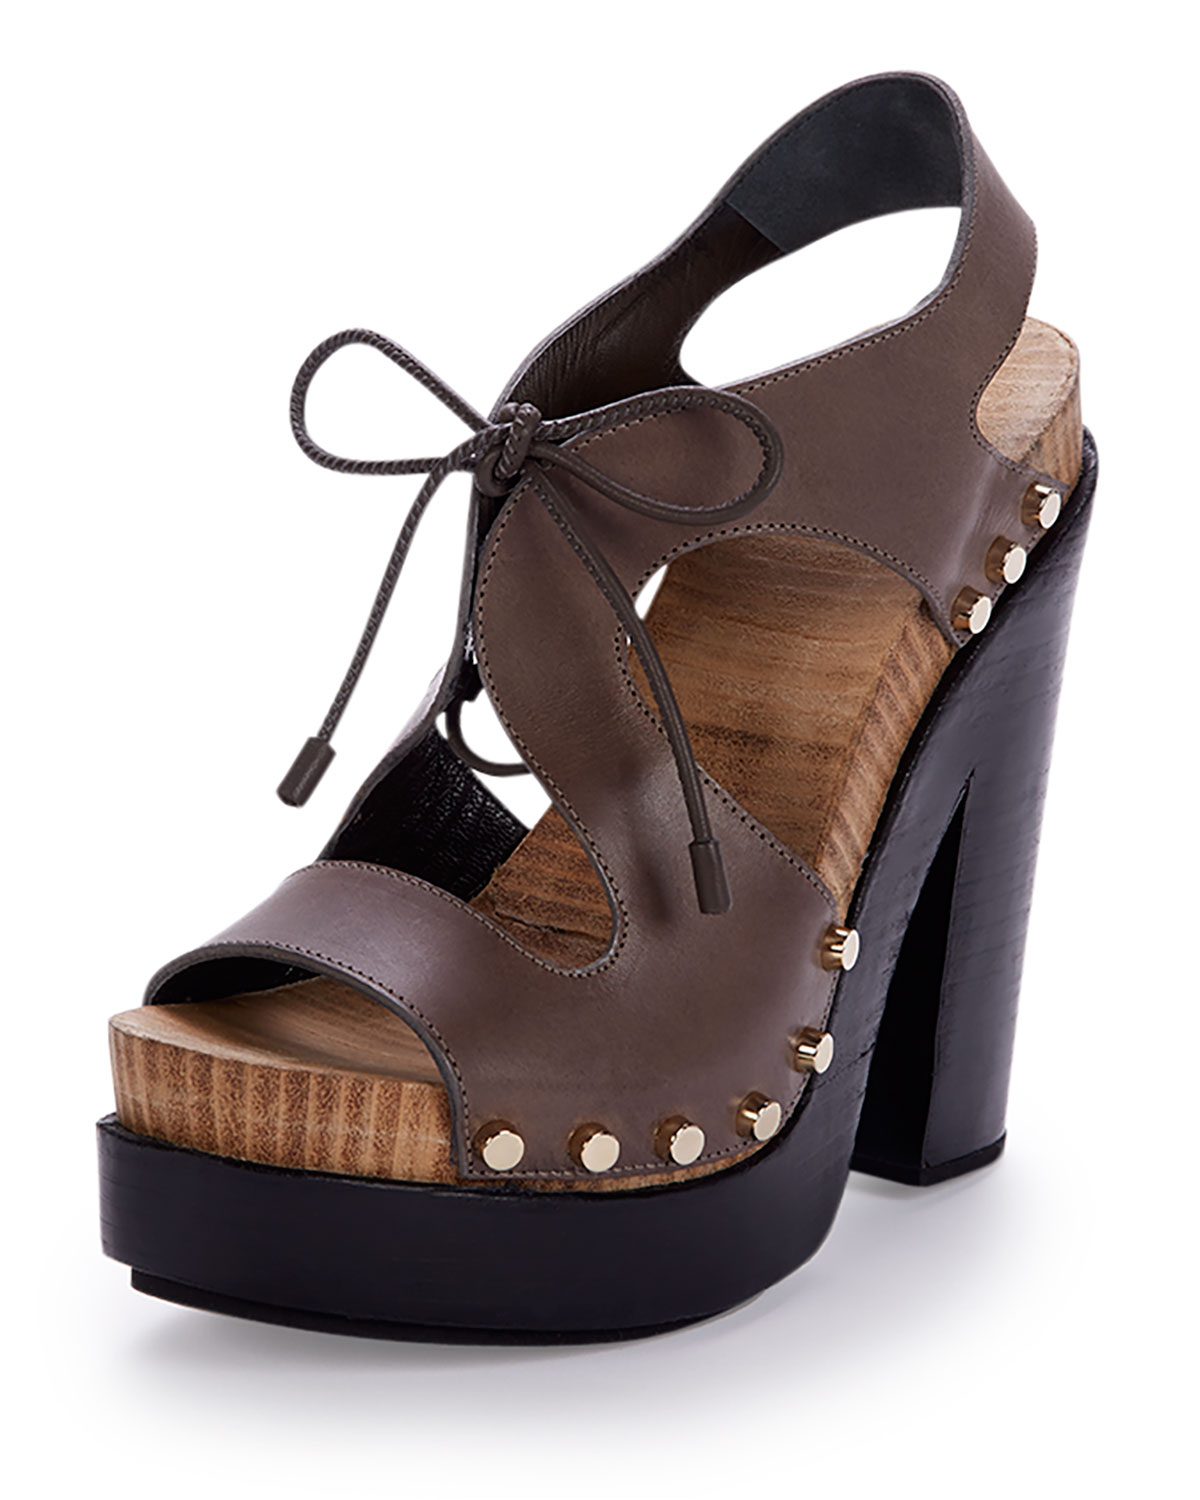 95MM LEATHER LACE UP SANDAL